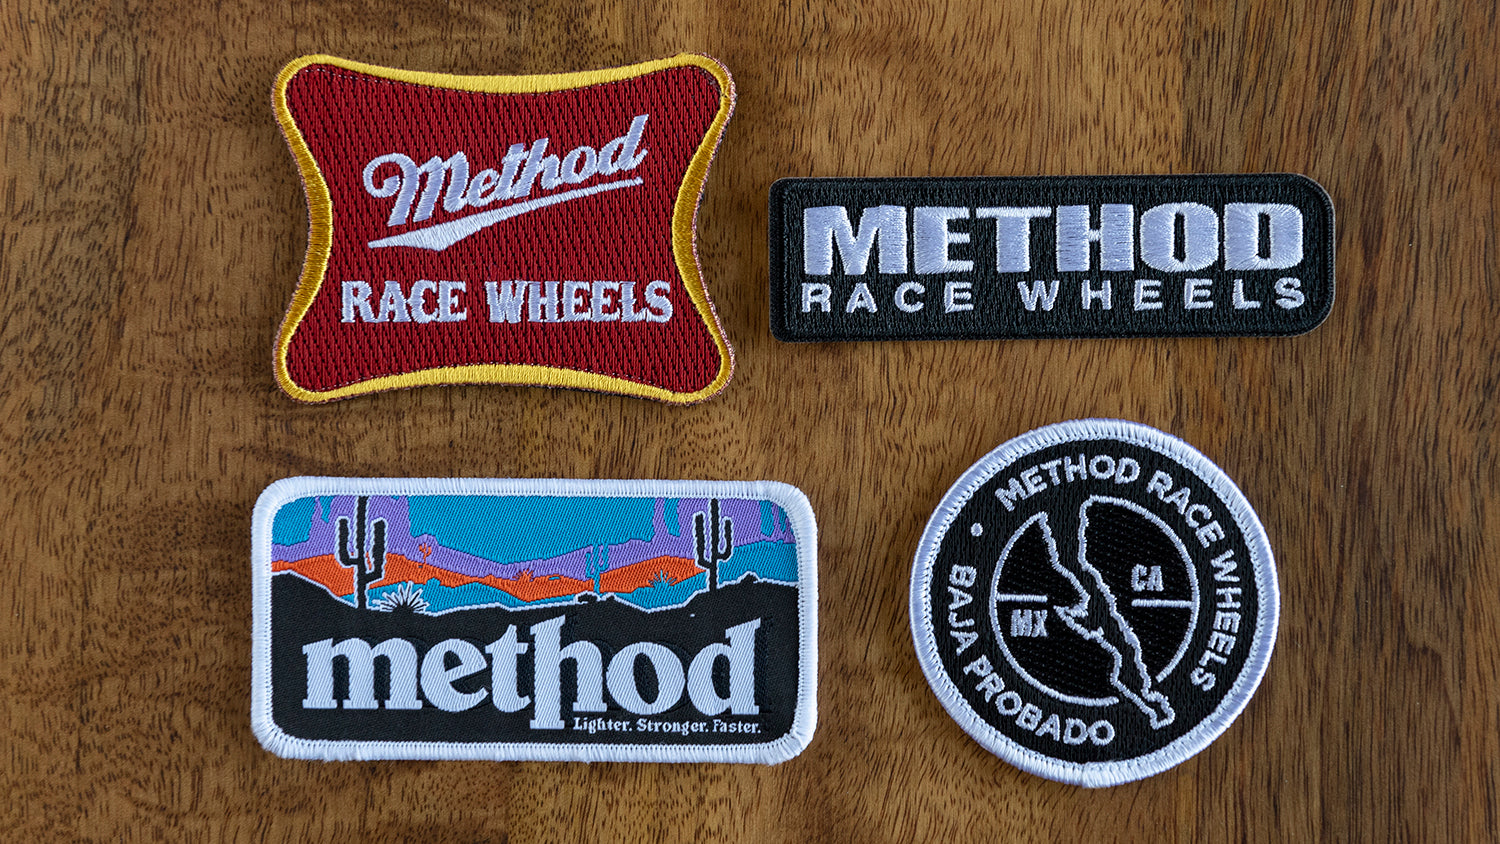 Method race wheels embroidered patch kit